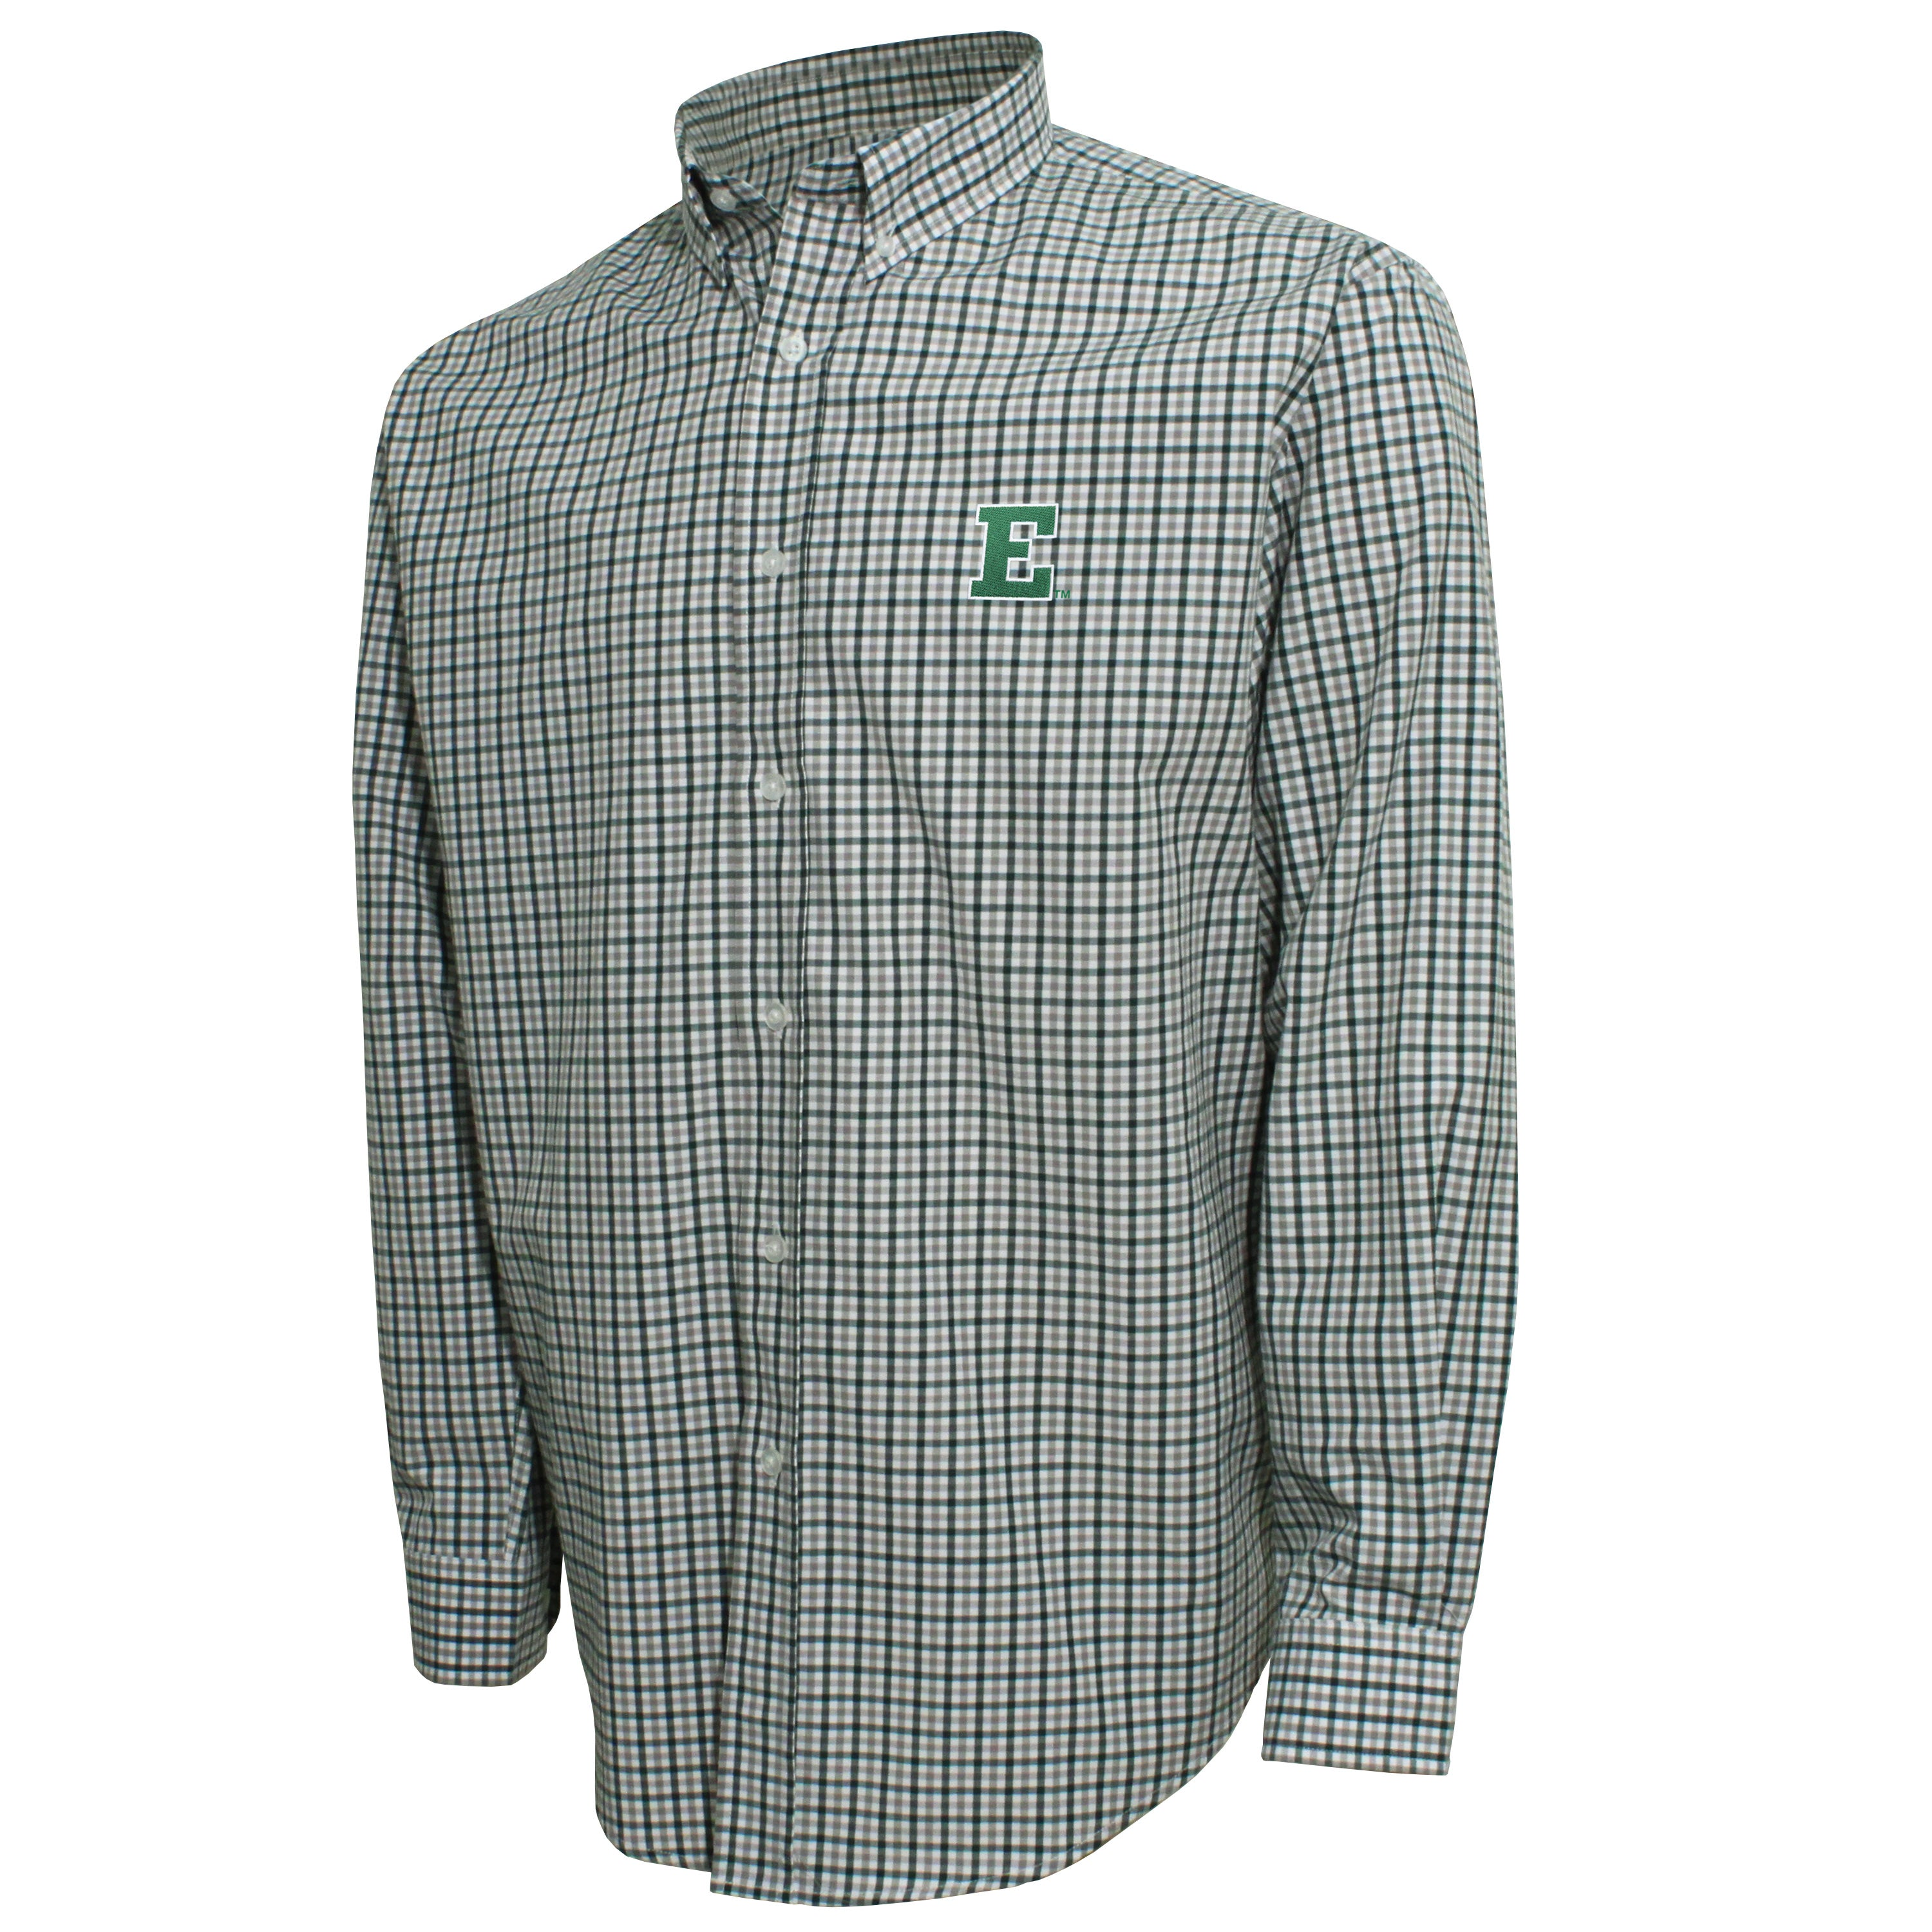 Campus Specialties Eastern Michigan Men's Green Shirt